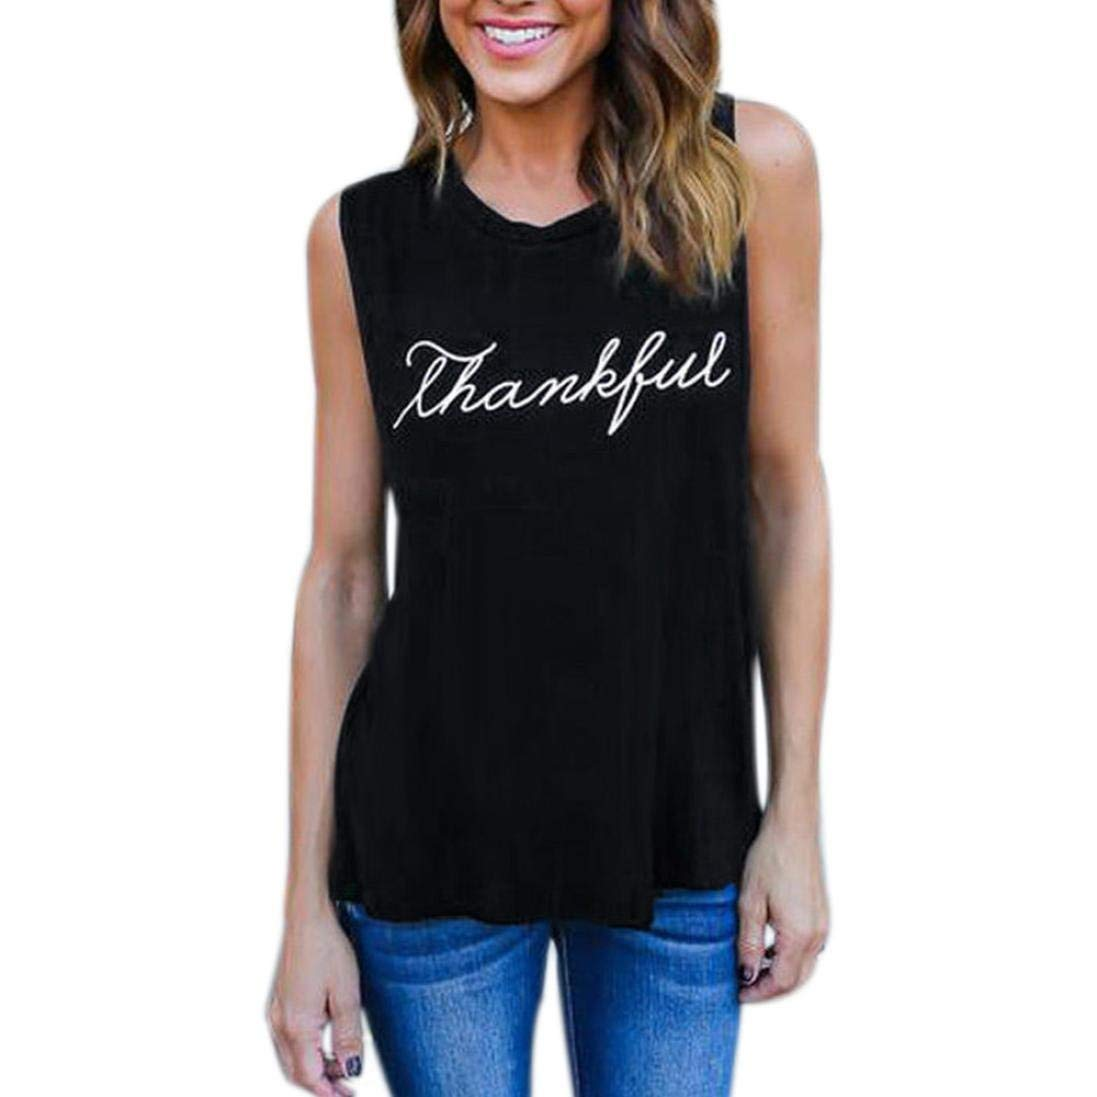 Forthery Tank Tops For Women, 2018 Hot Sale Women's Sleeveless Letter Tops  Tee Tanks Camis (Black, US S = Tag M)